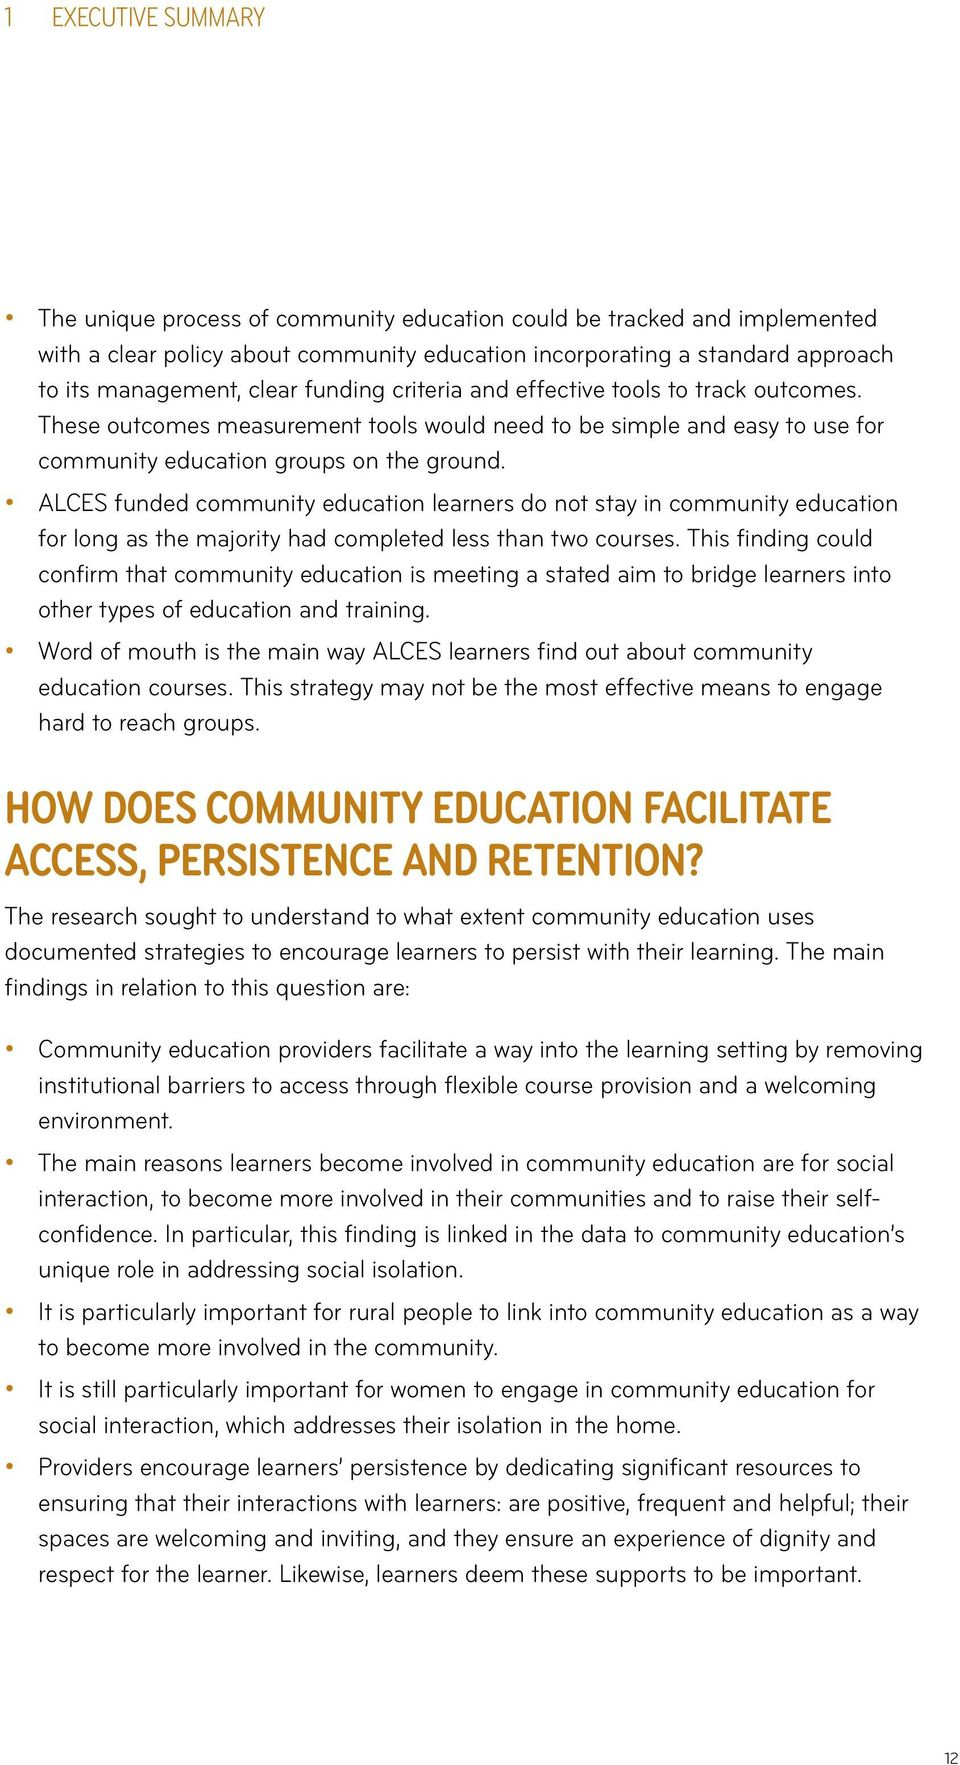 ALCES funded community education learners do not stay in community education for long as the majority had completed less than two courses.